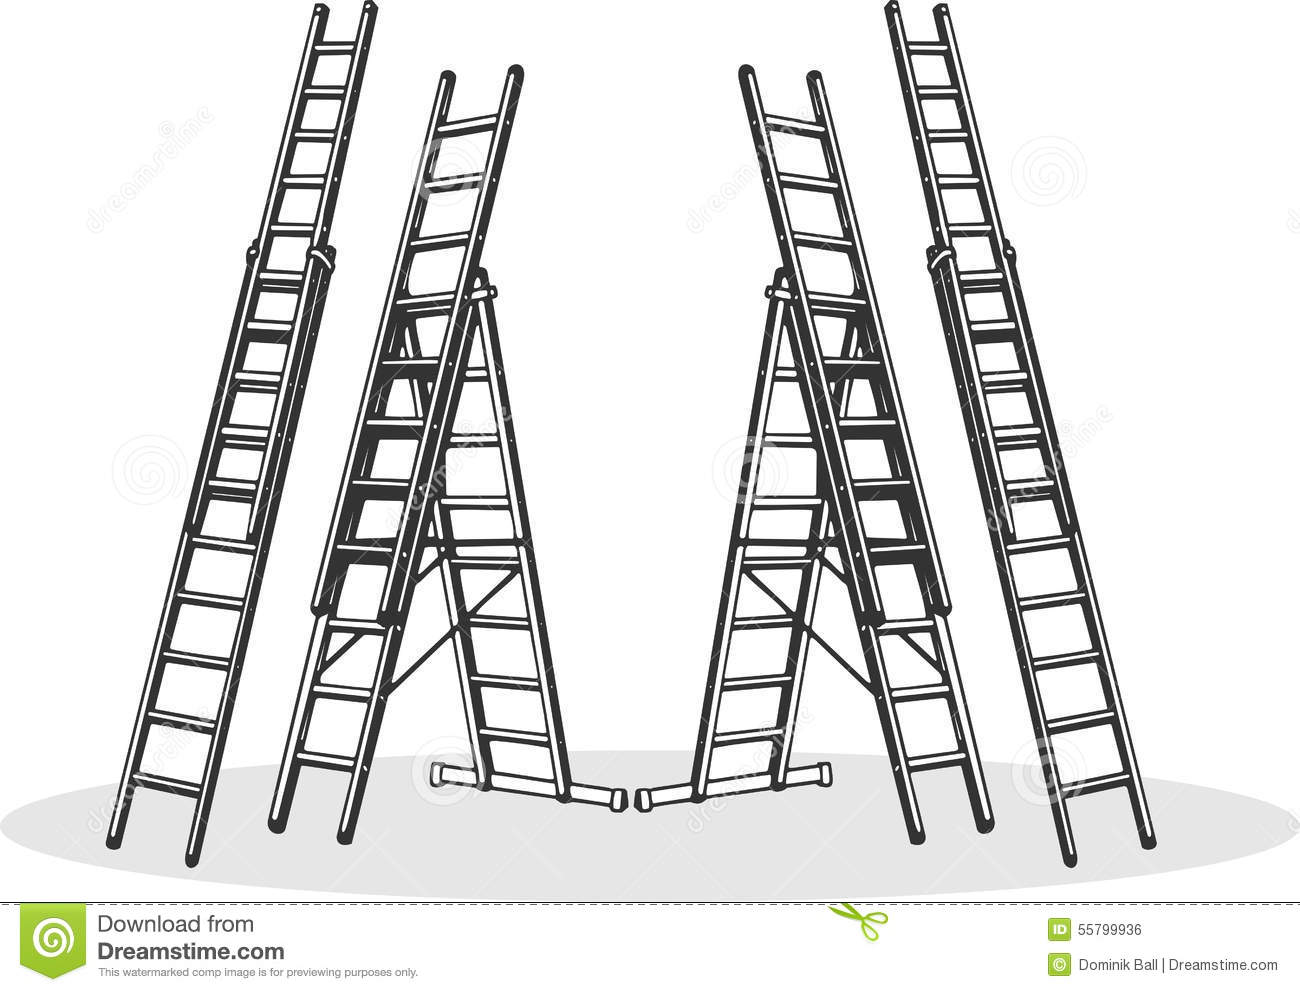 Aluminum Ladders Stock Vector